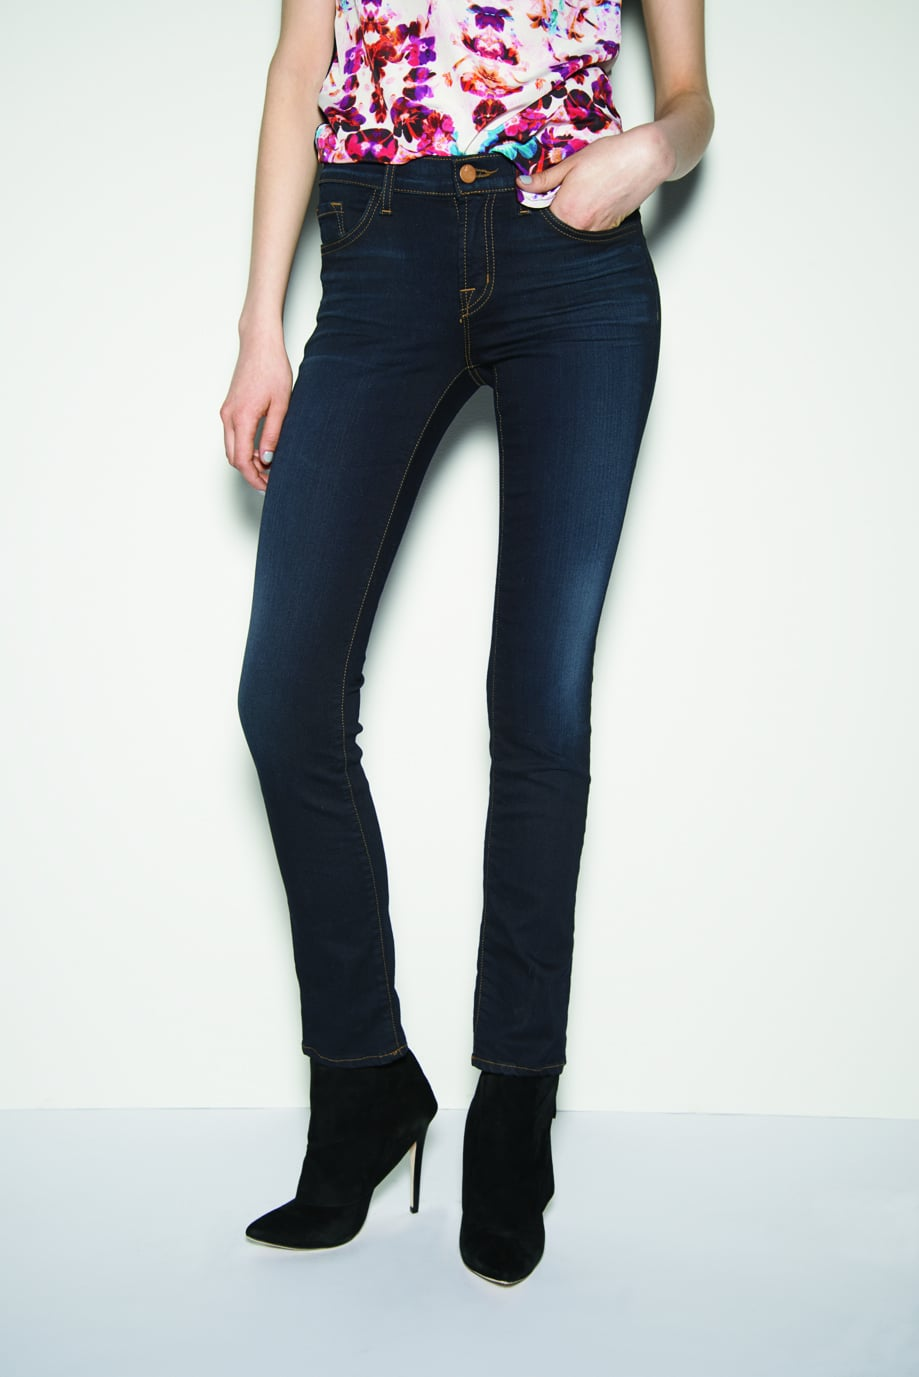 A classic dark jean ($120, originally $180) from cult favorite J Brand is one of the smartest sale buys around.